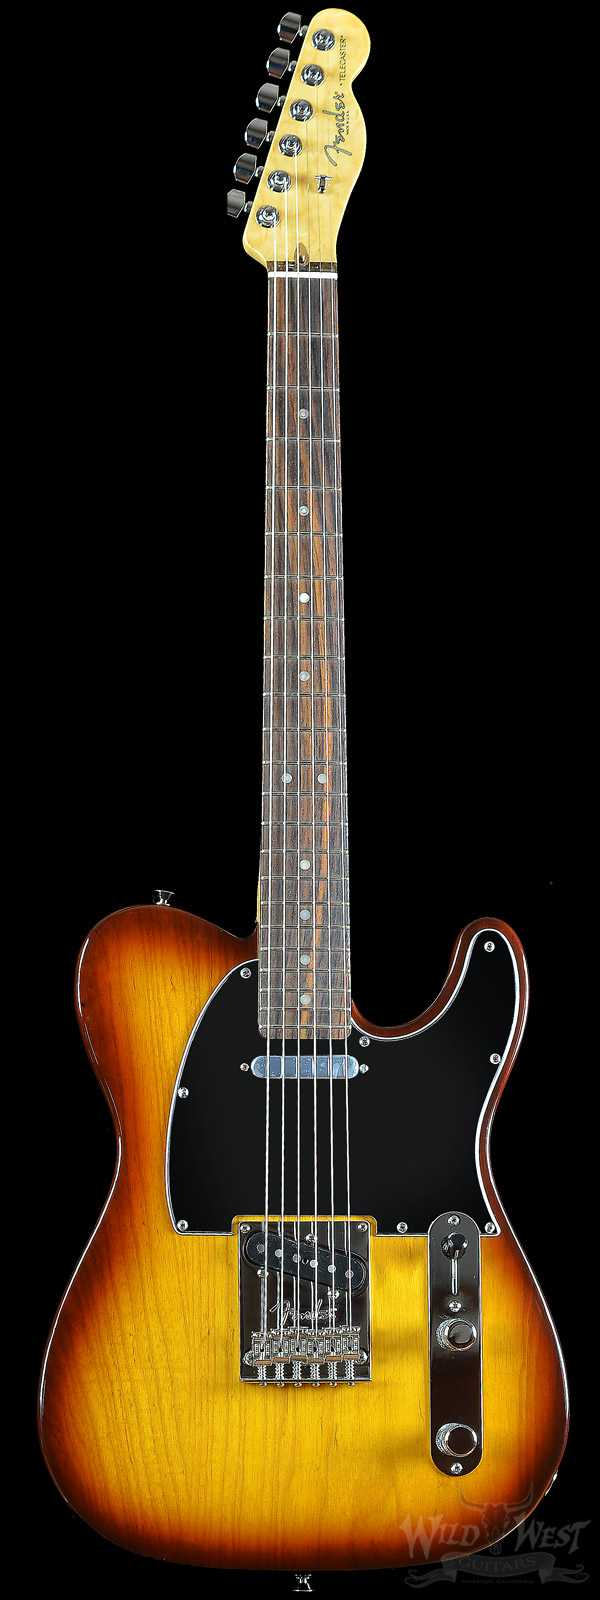 Fender Limited Edition Magnificent 7 American Standard Telecaster Cognac Burst